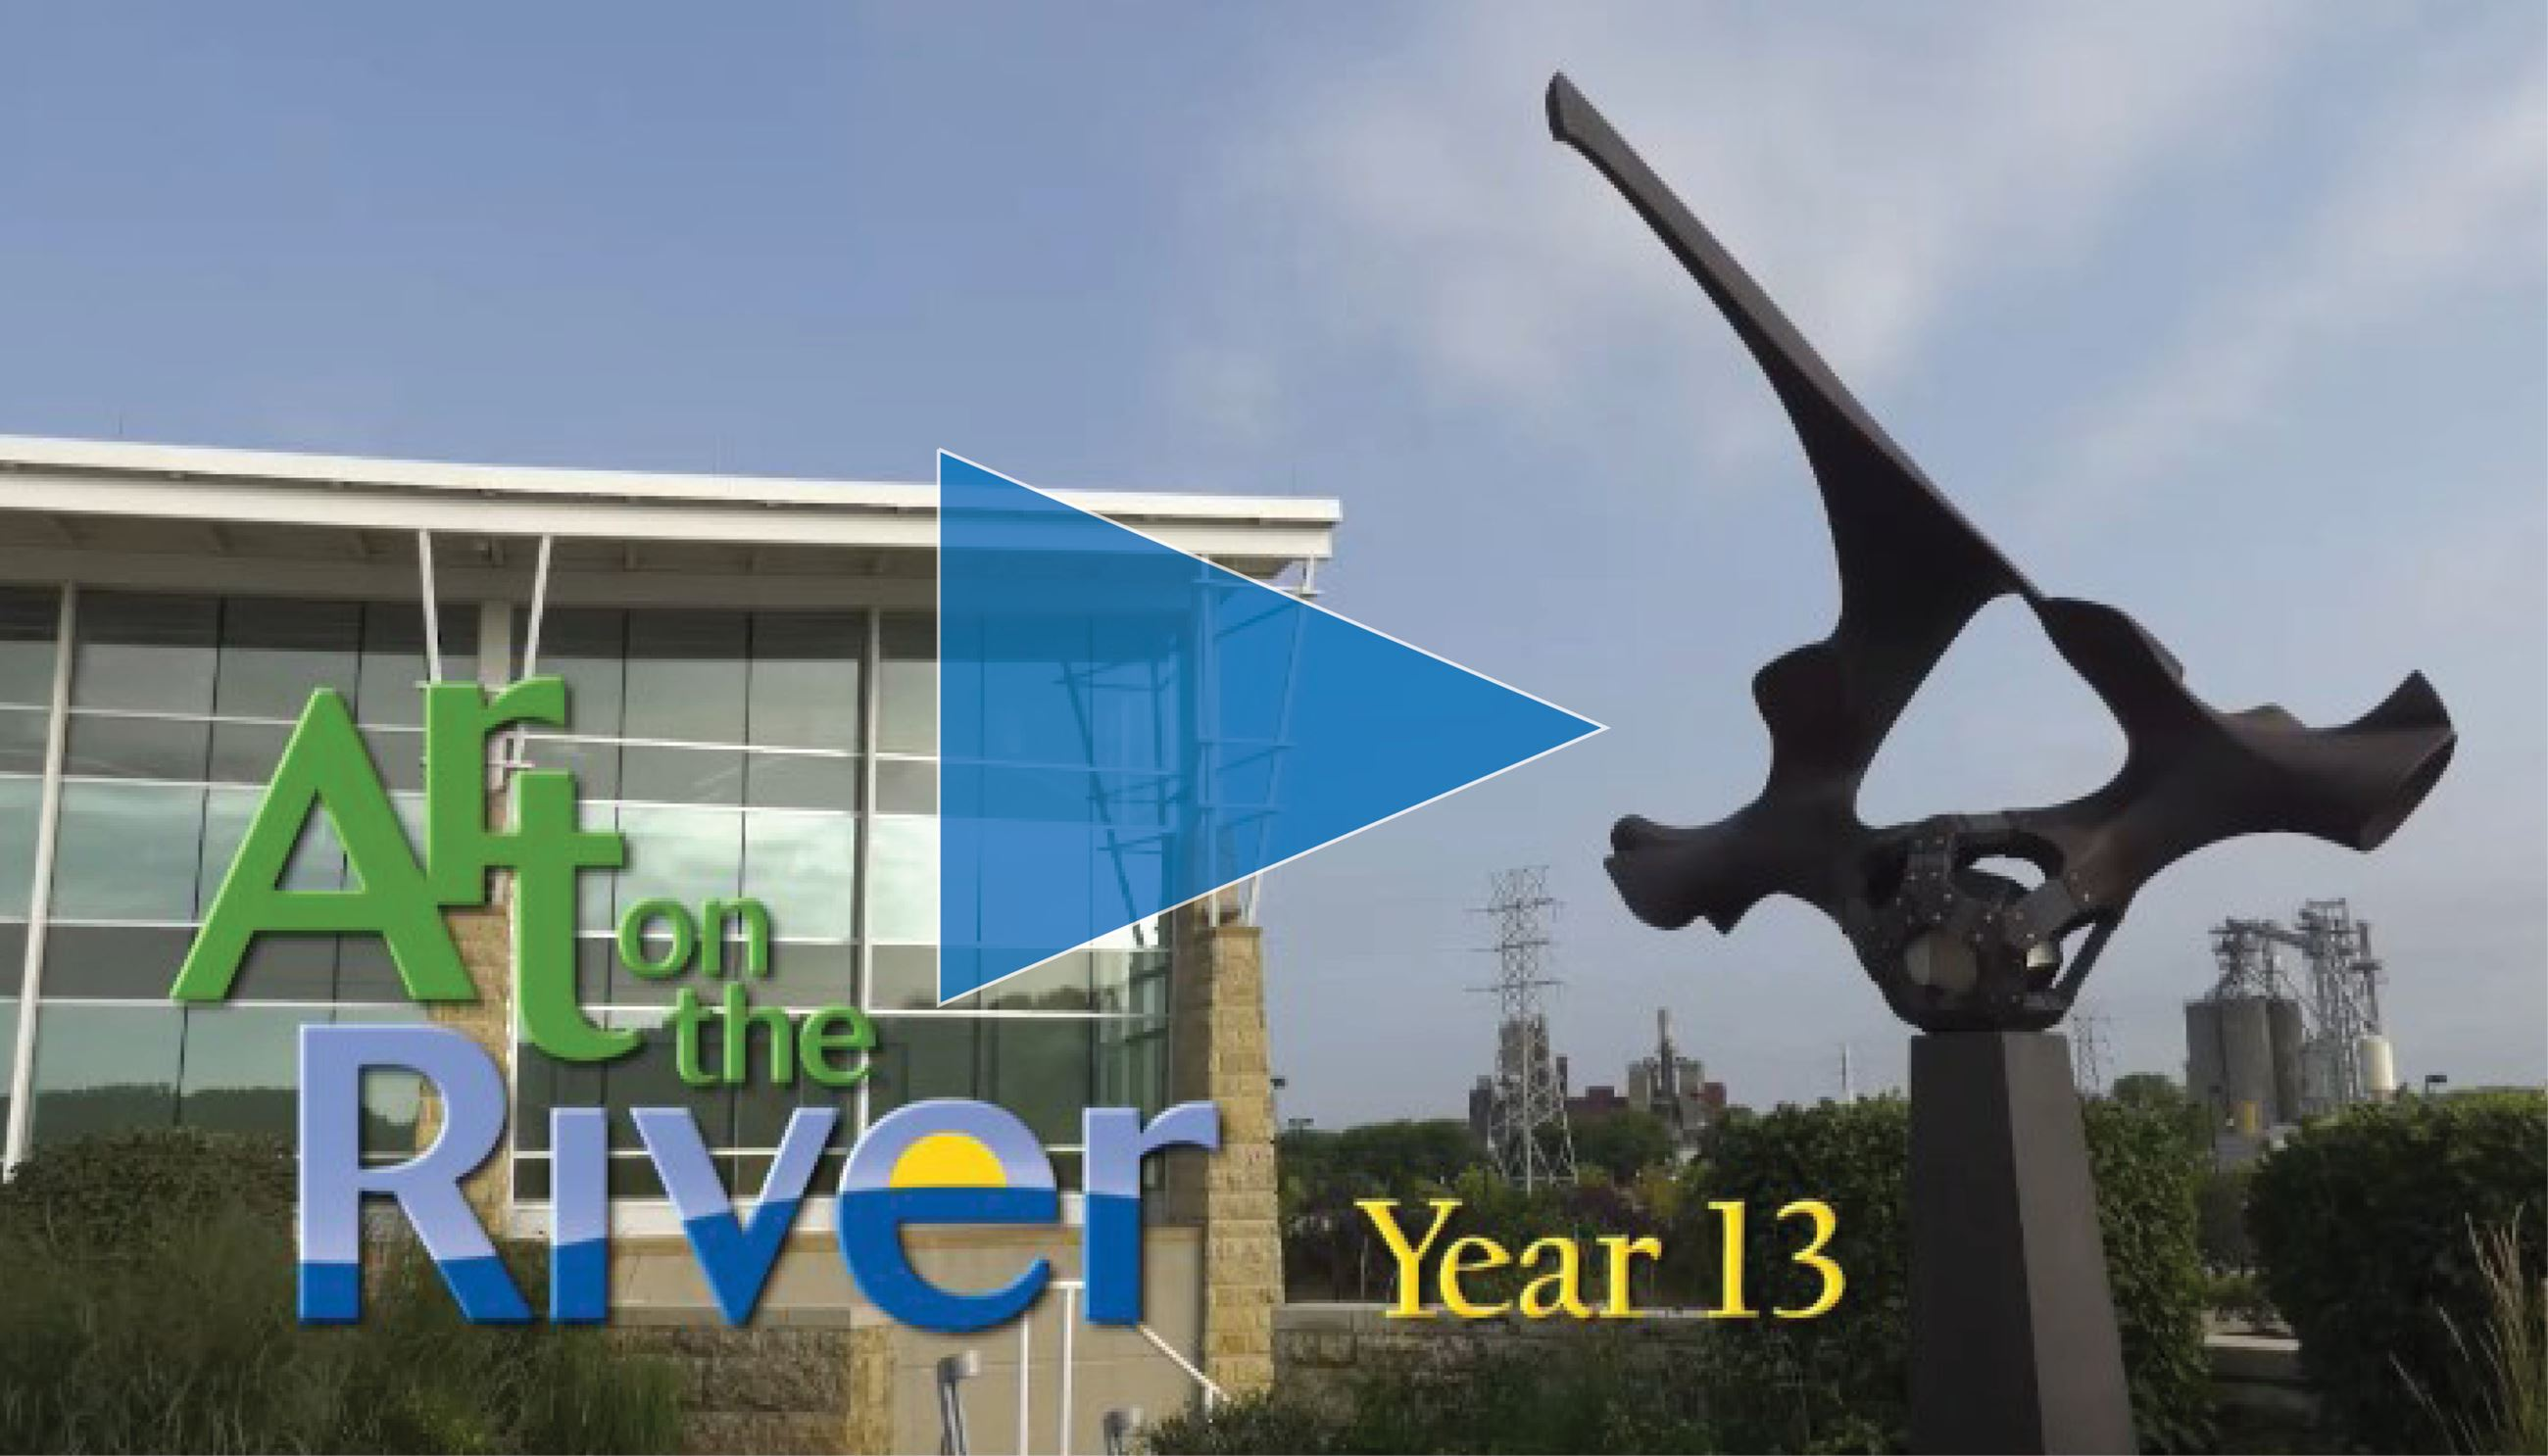 Year 13 Video Cover Image w Play